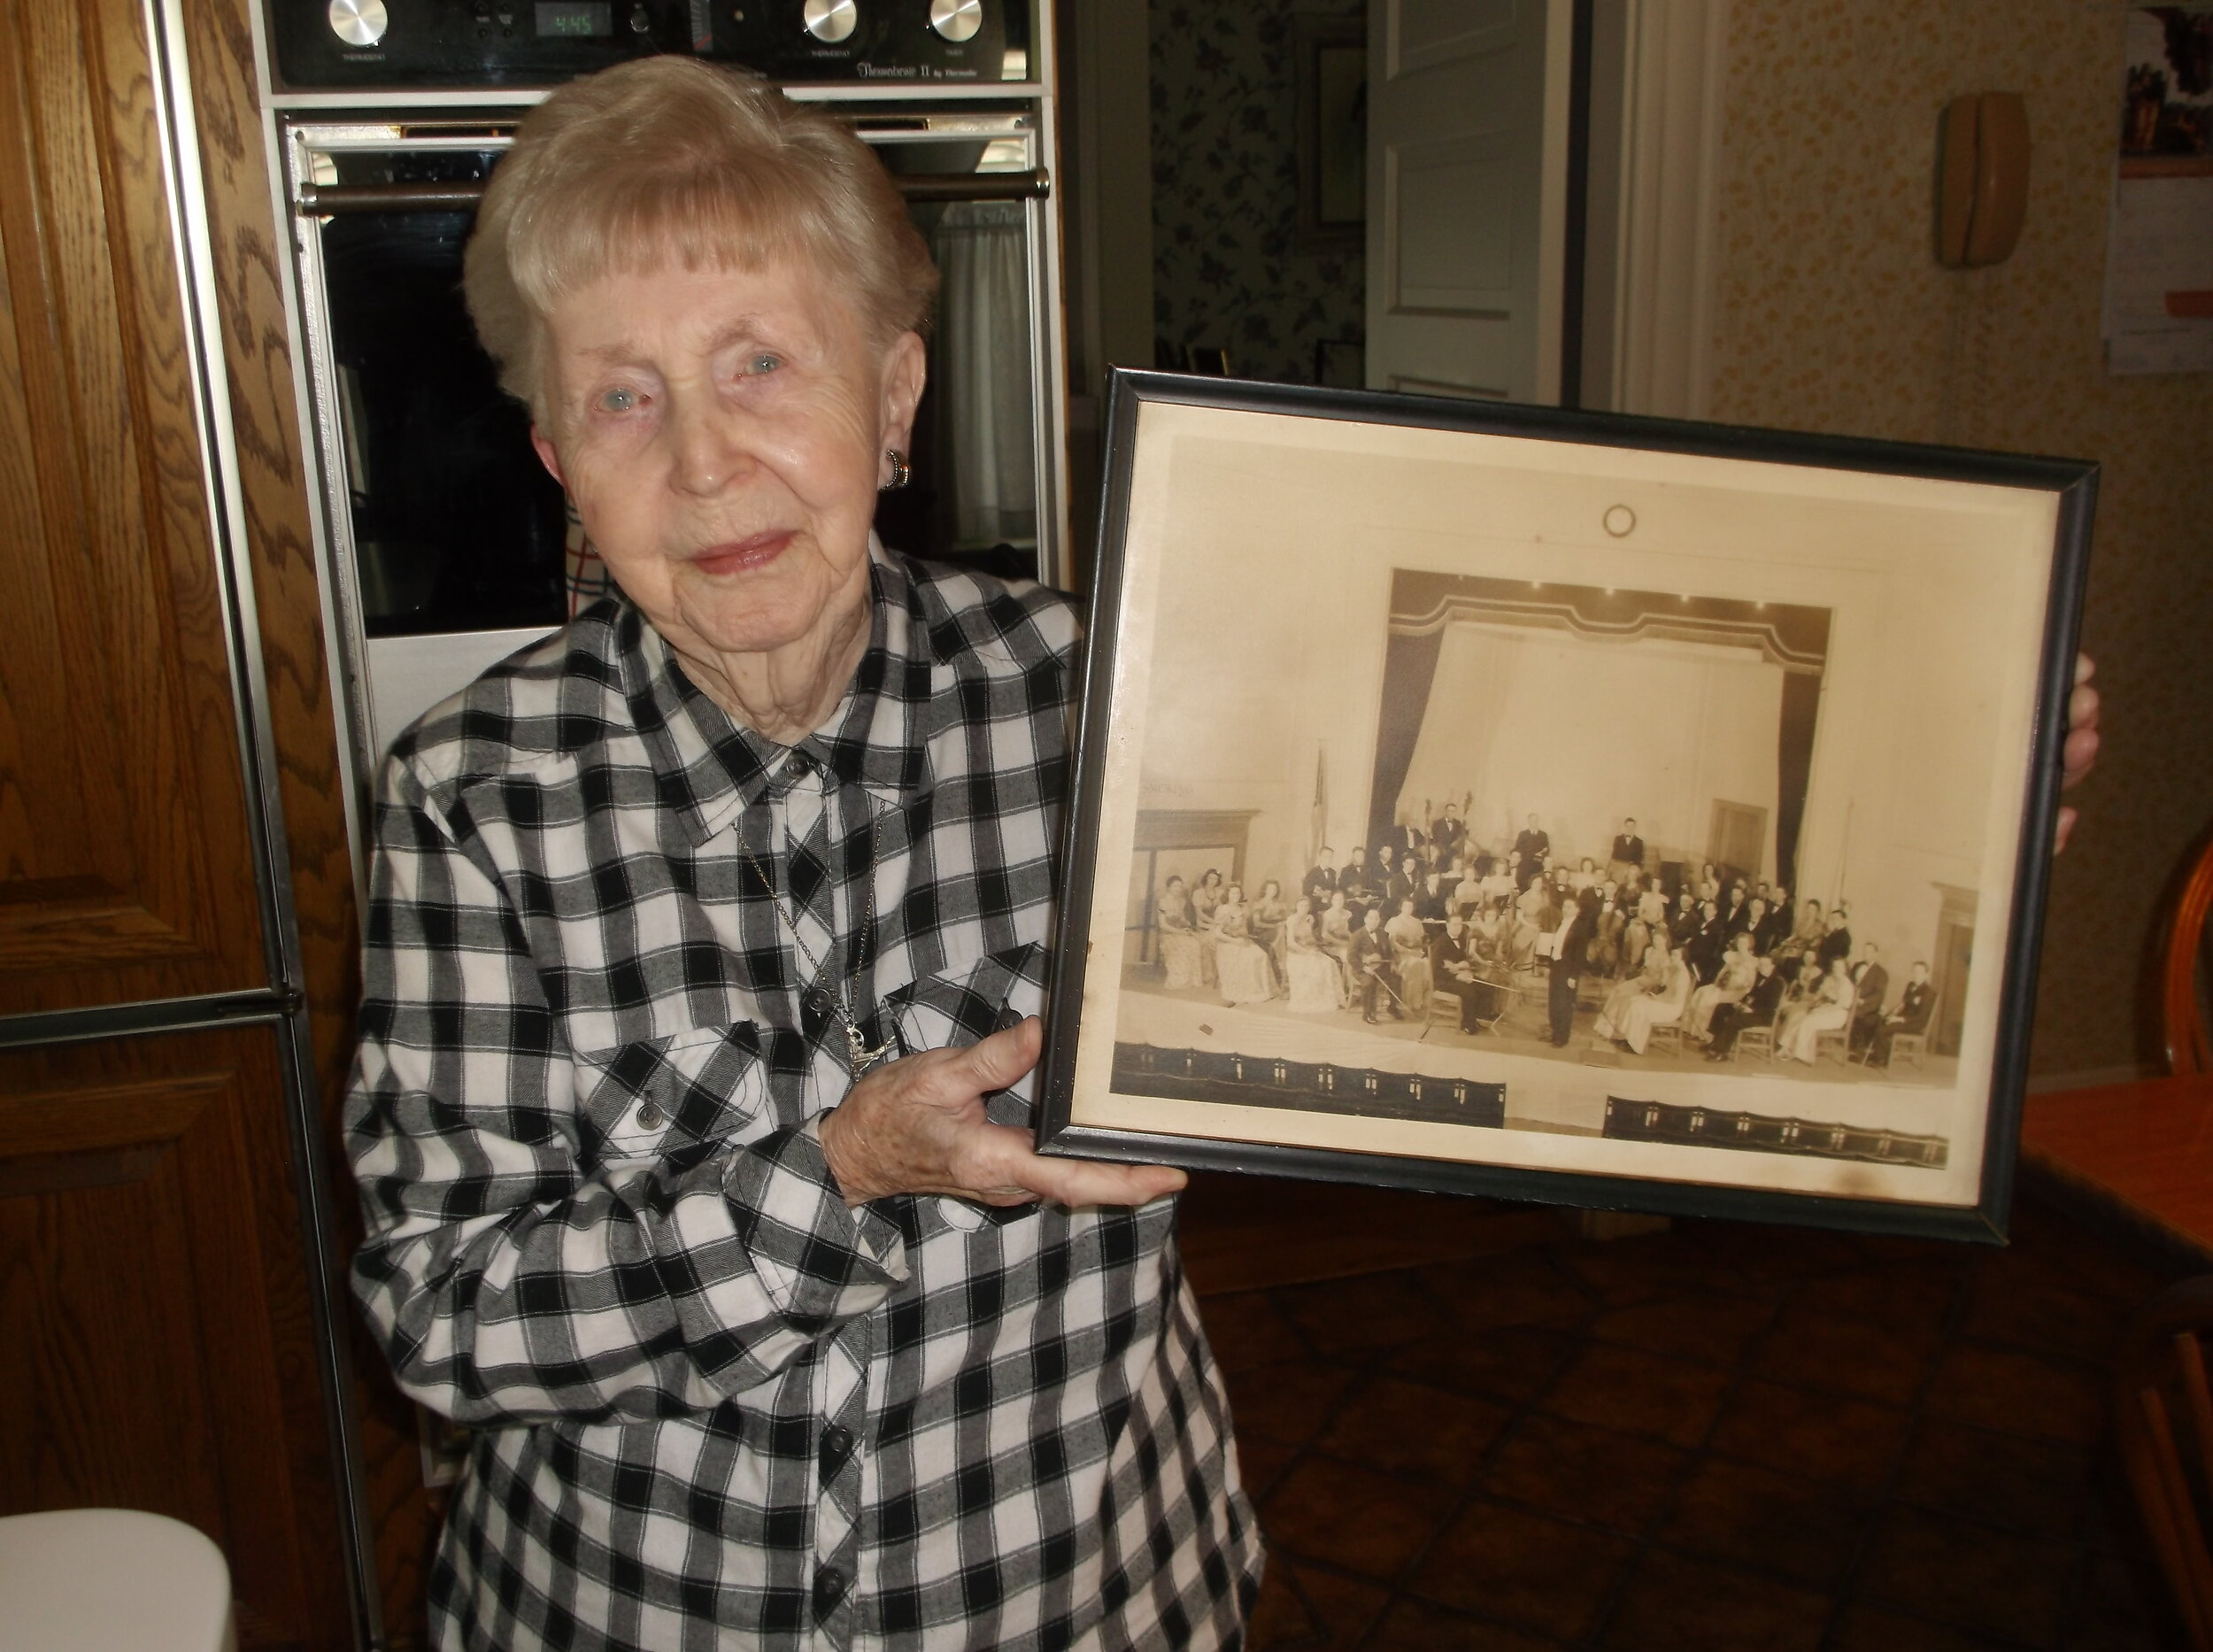 Frances holding a picture of the Lowell Philharmonic taken around 1938. Her father is sitting right behind the concert master (the violinist sitting immediately to the left of the conductor).